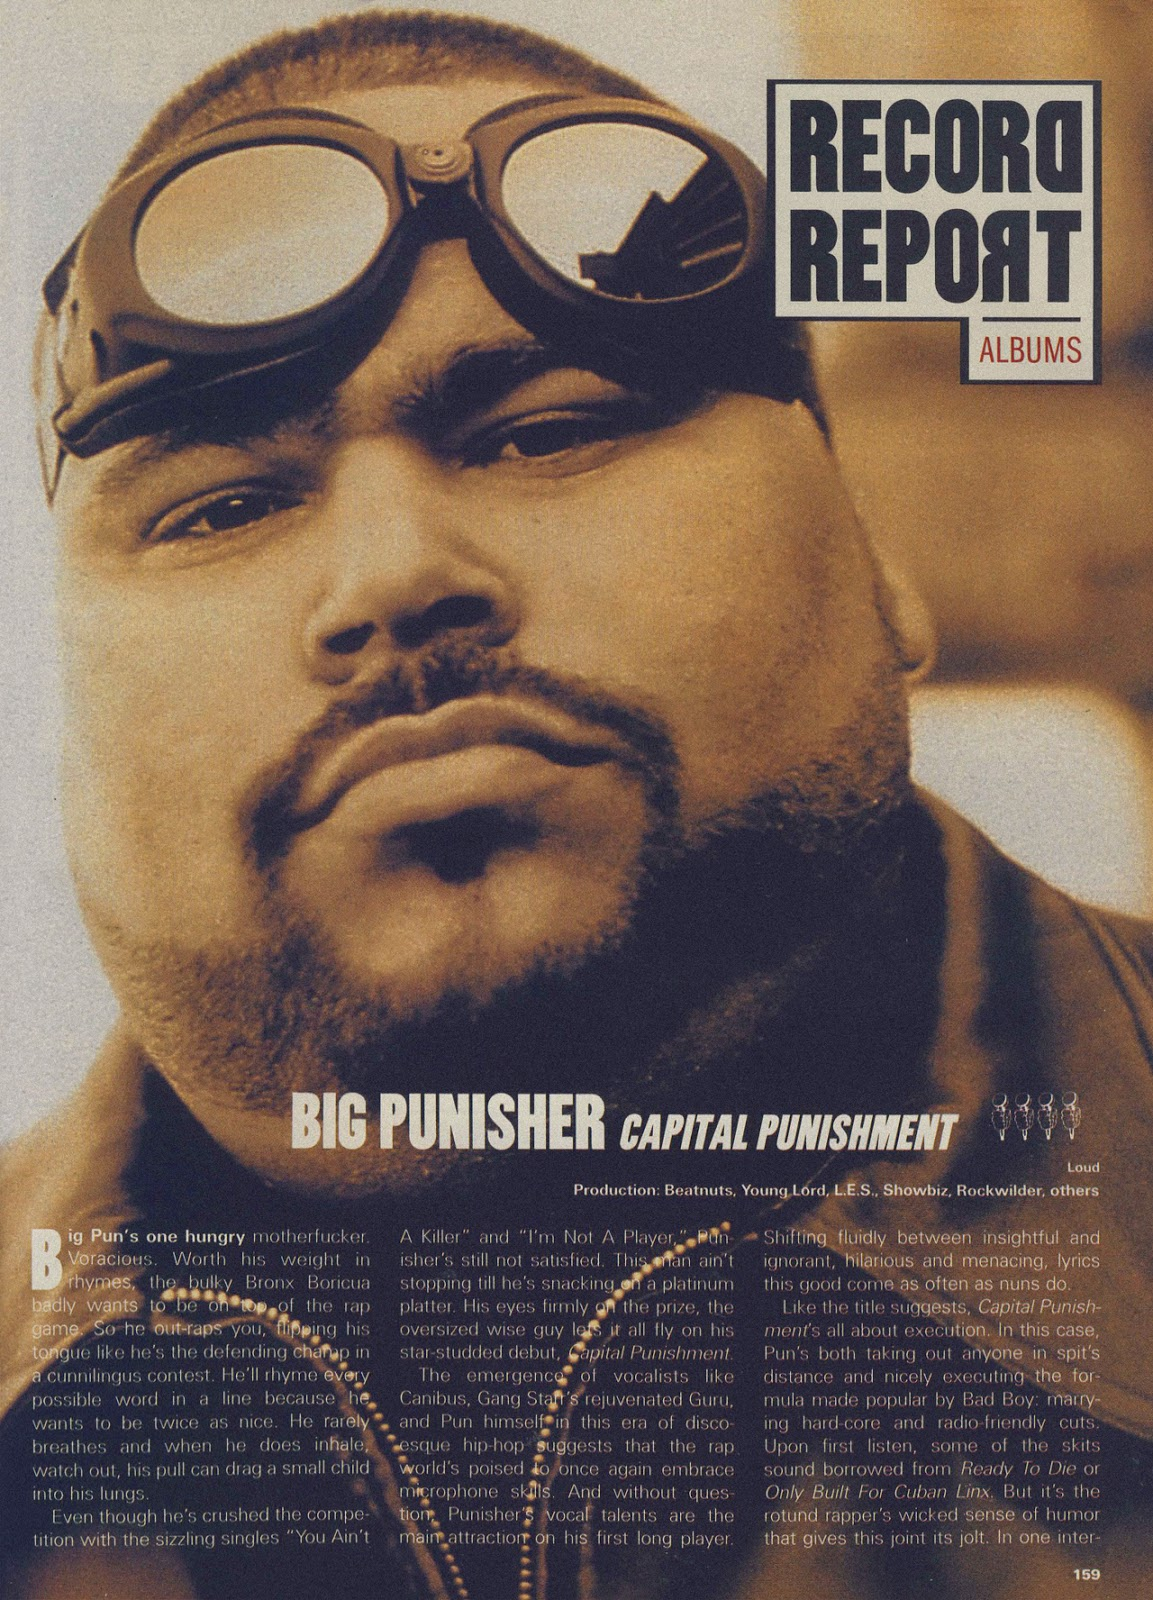 Big Pun 'Capital Punishment' (Record Report, 1998) Page 1